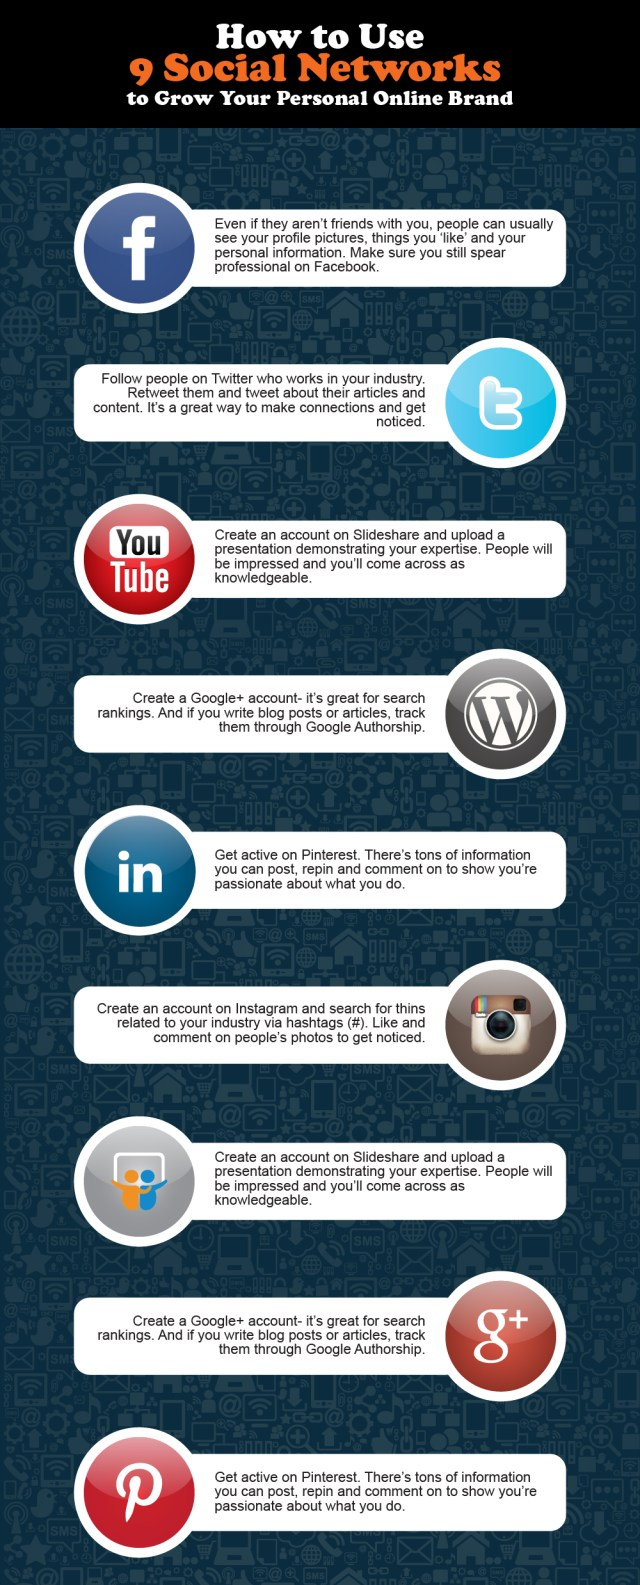 how-to-use-9-social-networks-to-grow-your-personal-online-brand_553e444905c7d